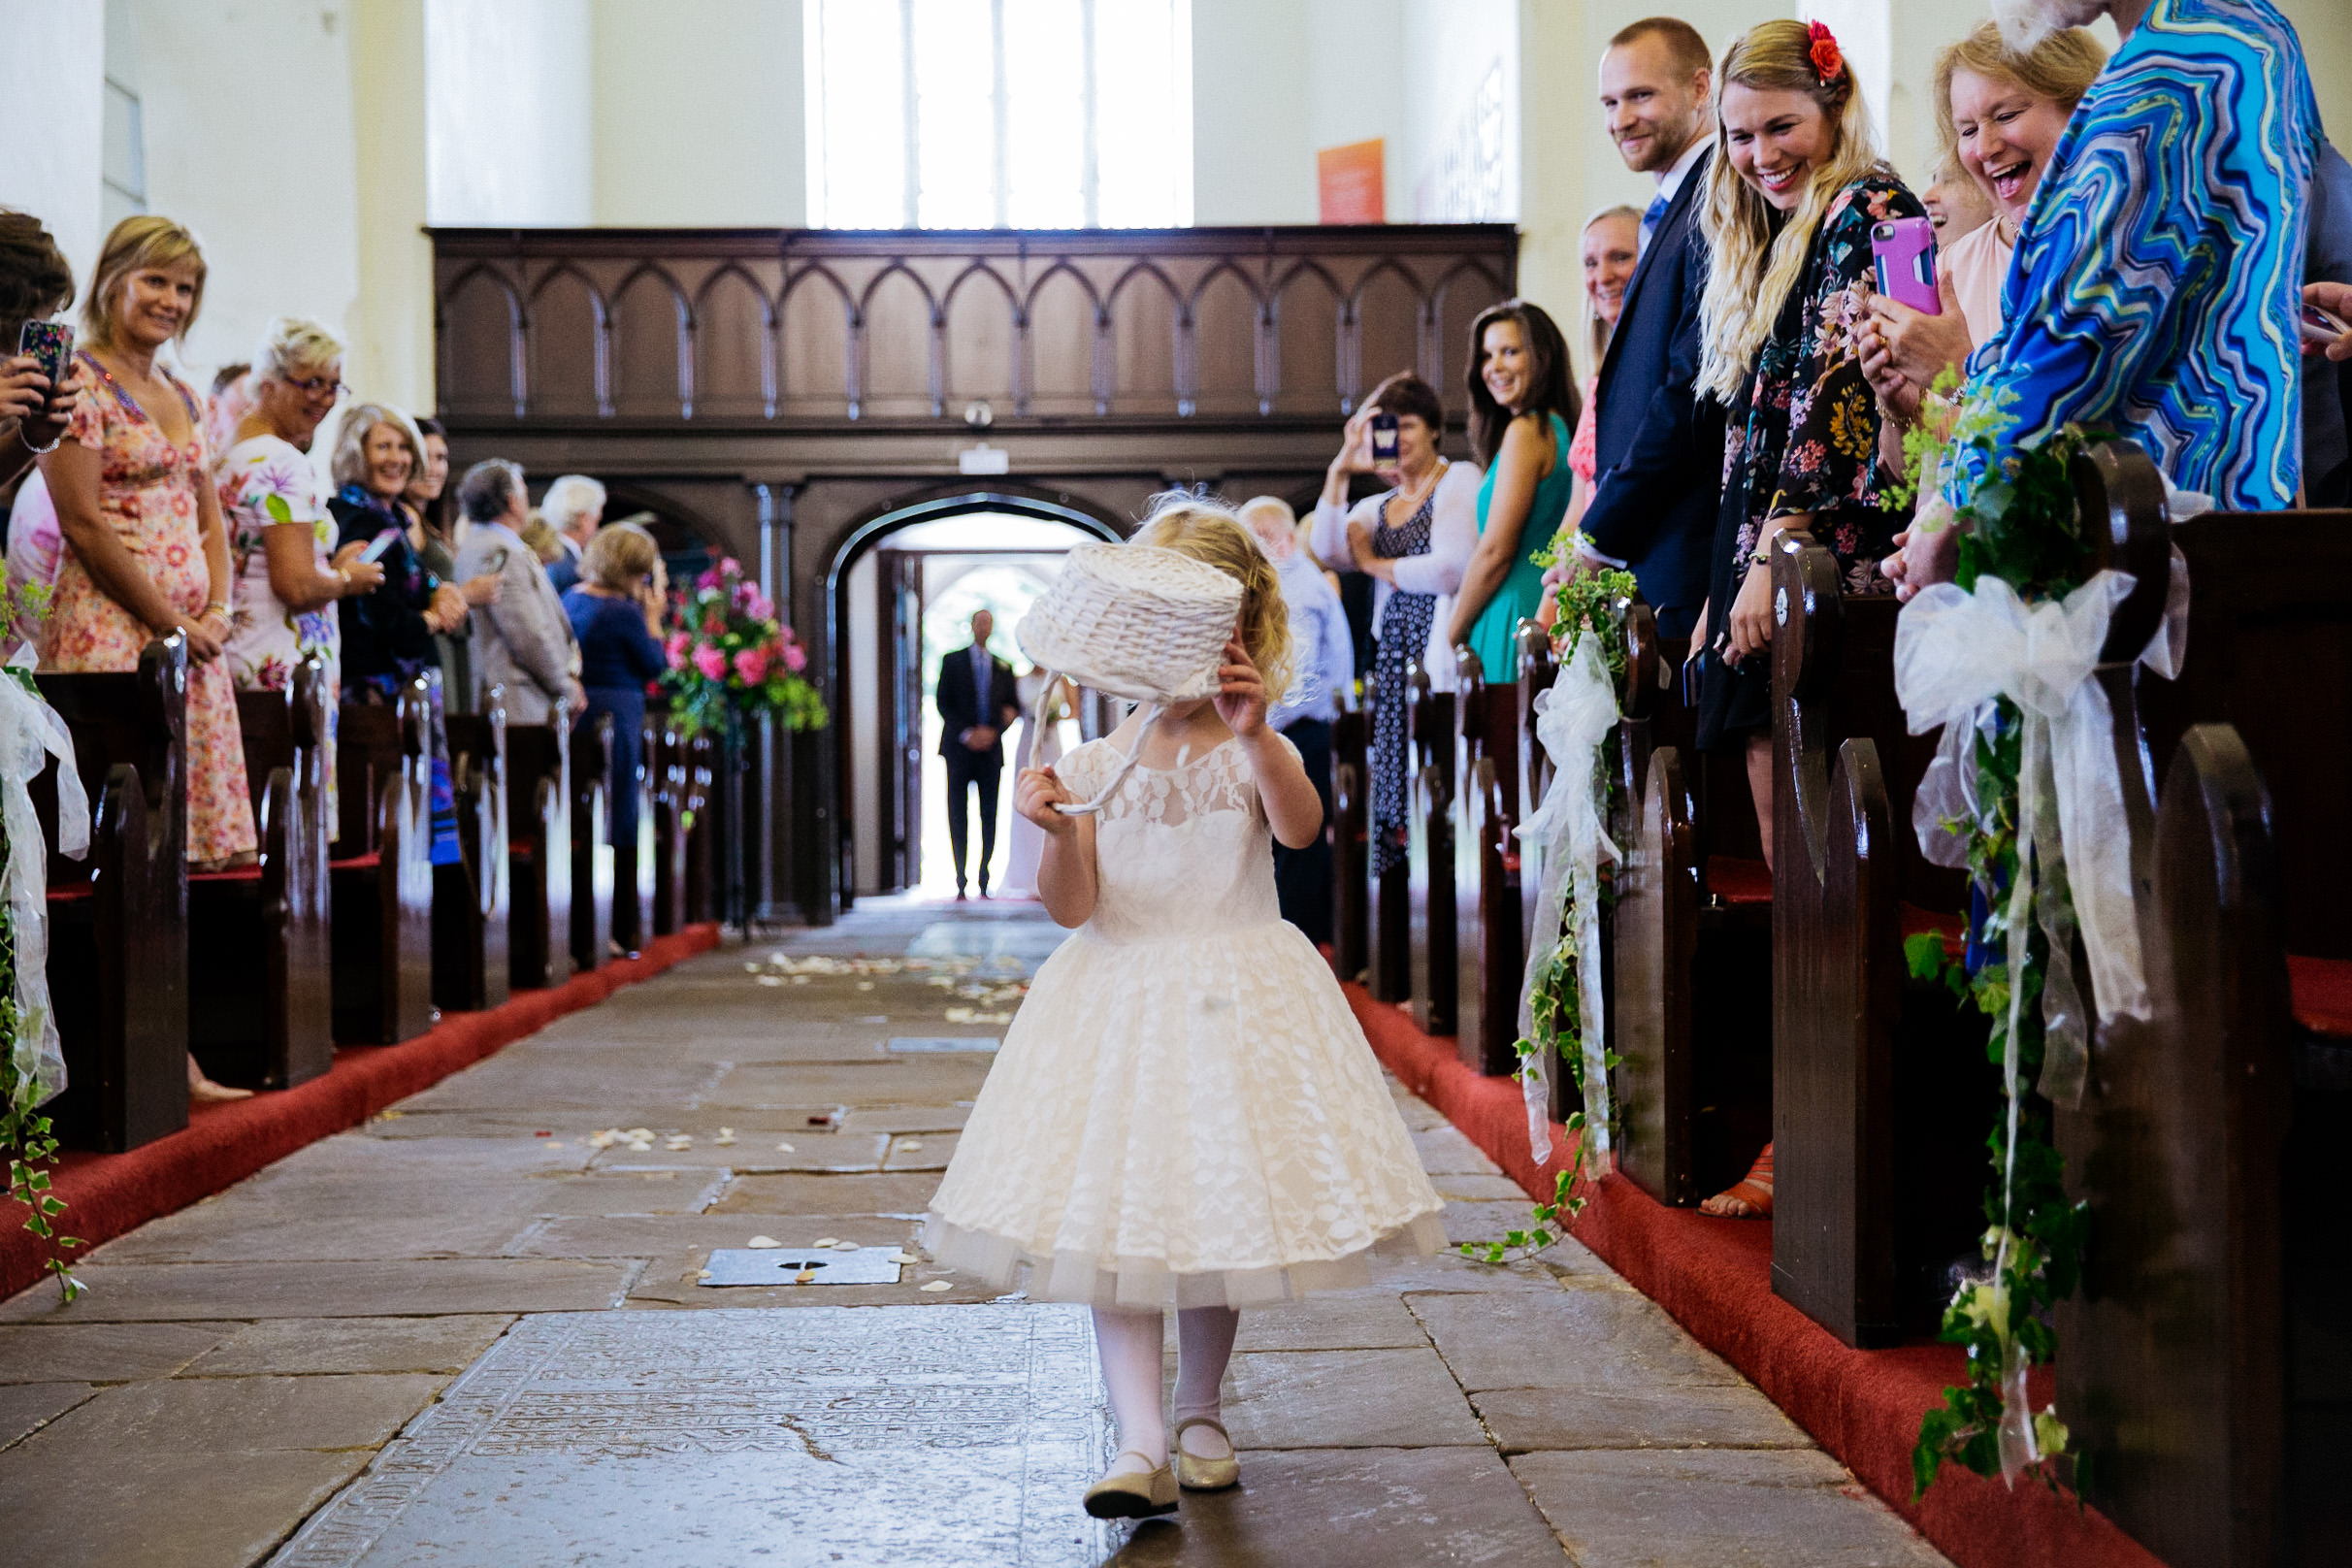 clairebyrnephotography-fun-wedding-photographer-ireland-creative-166.jpg